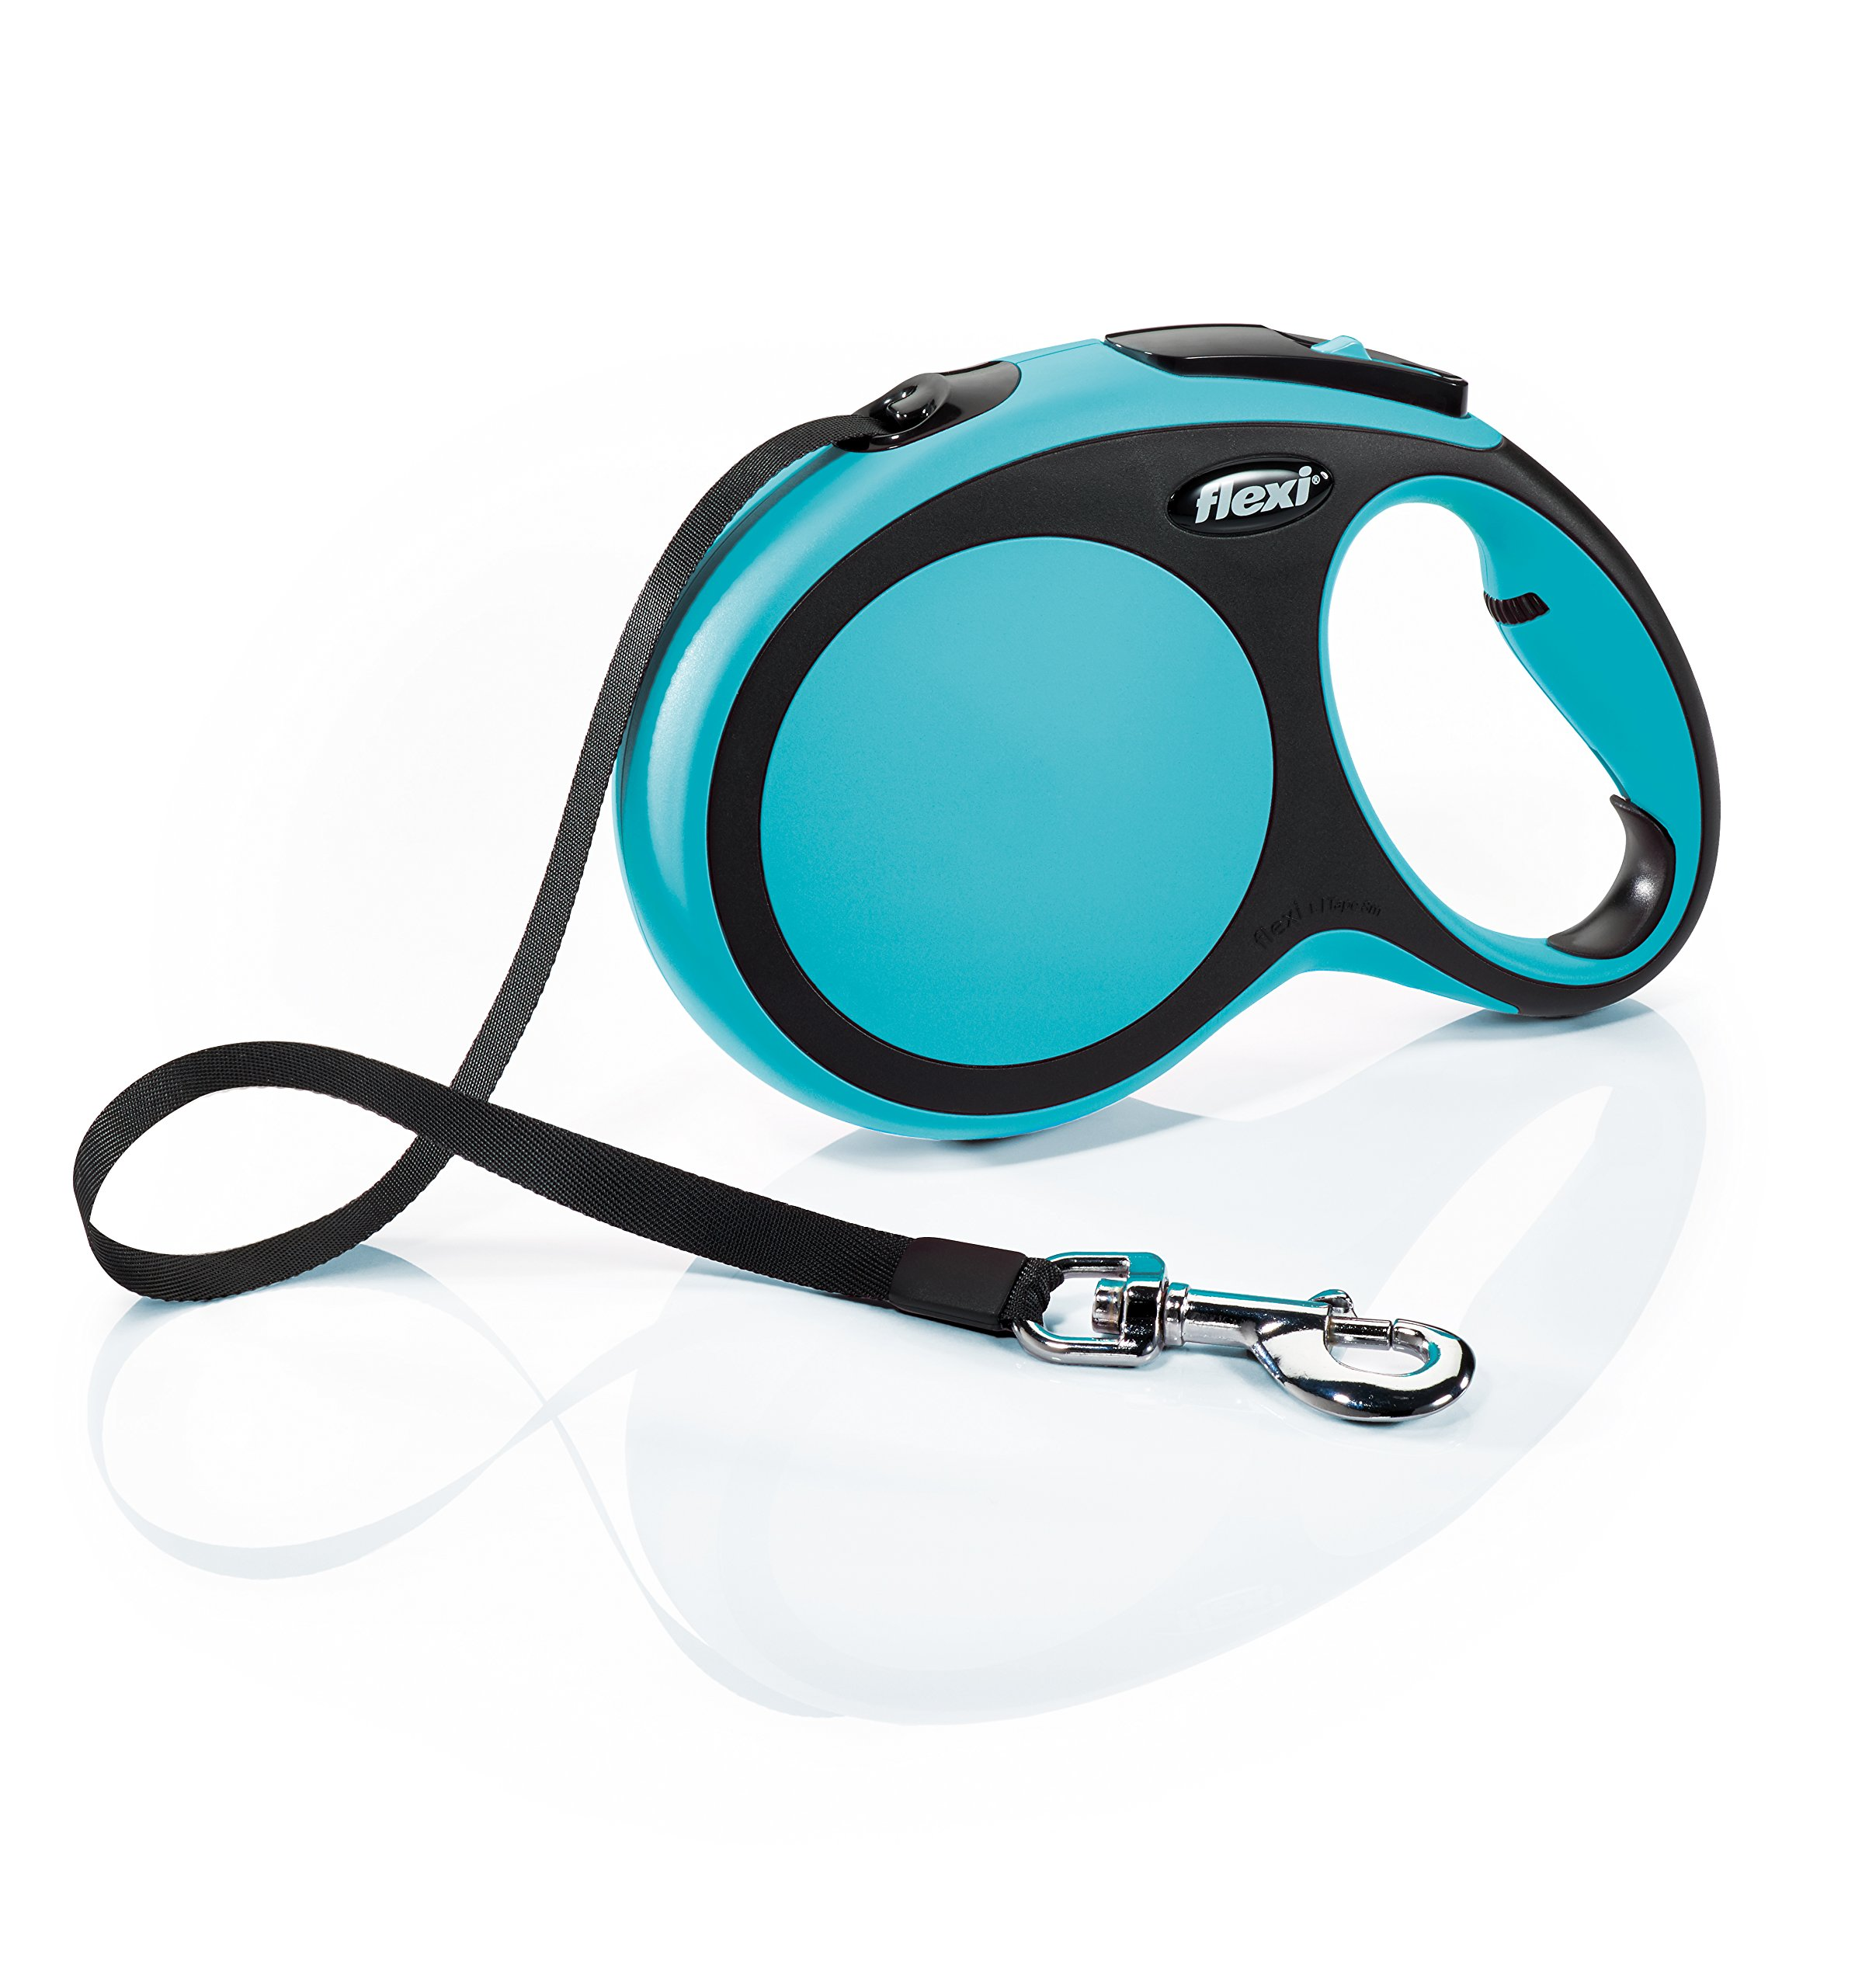 Flexi New Comfort Retractable Dog Leash (Tape), 26 ft, Large, Blue by Flexi